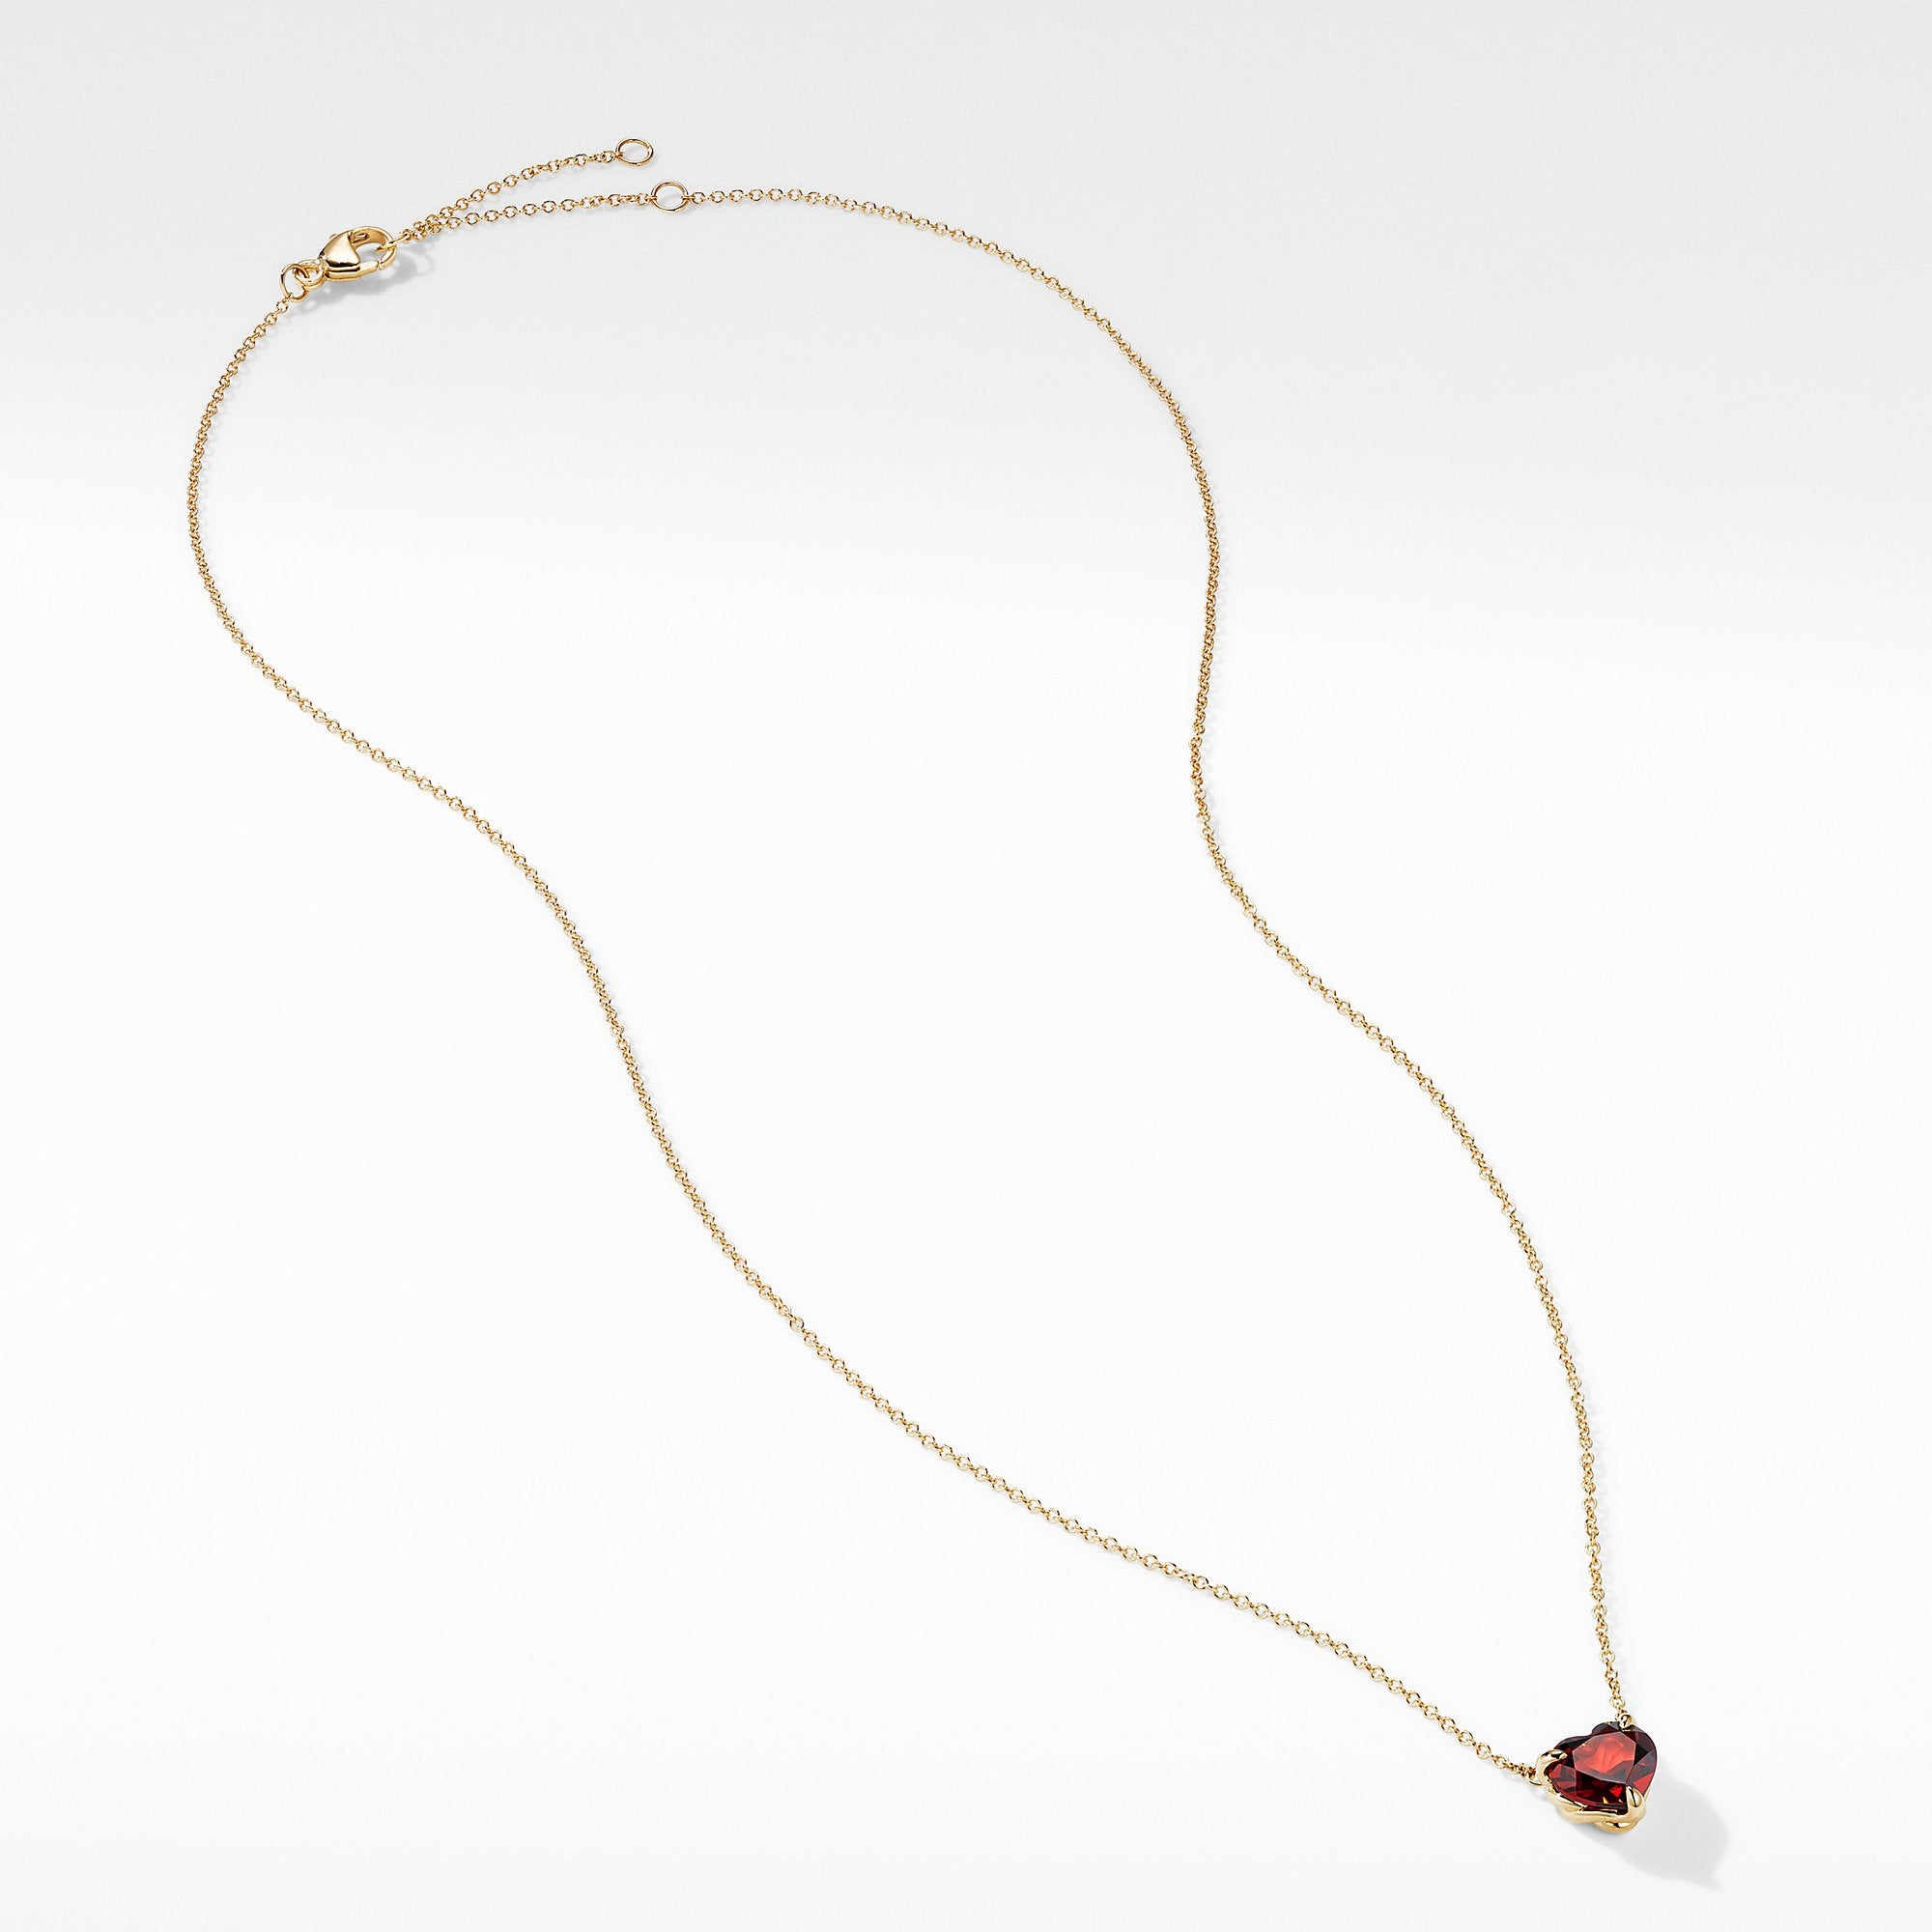 Heart Pendant Necklace in 18K Yellow Gold with Garnet